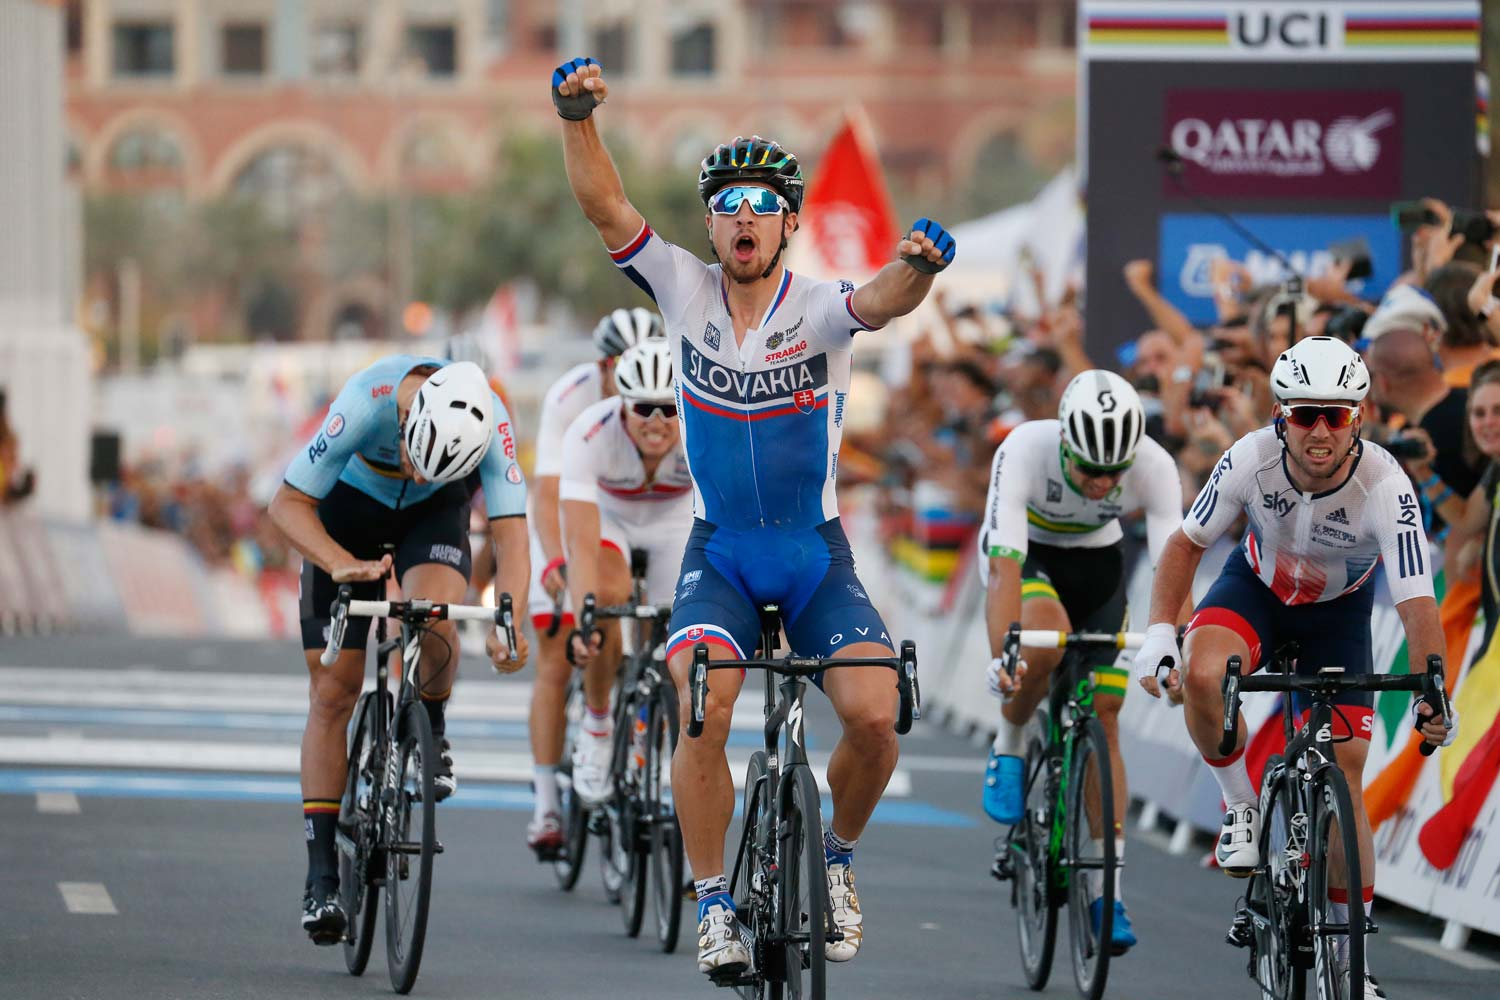 A second title... Peter Sagan celebrates while both Tom Boonen and Mark Cavendish show signs of frustration at having missed out on winning a championship for a second time. Photo: Yuzuru Sunada